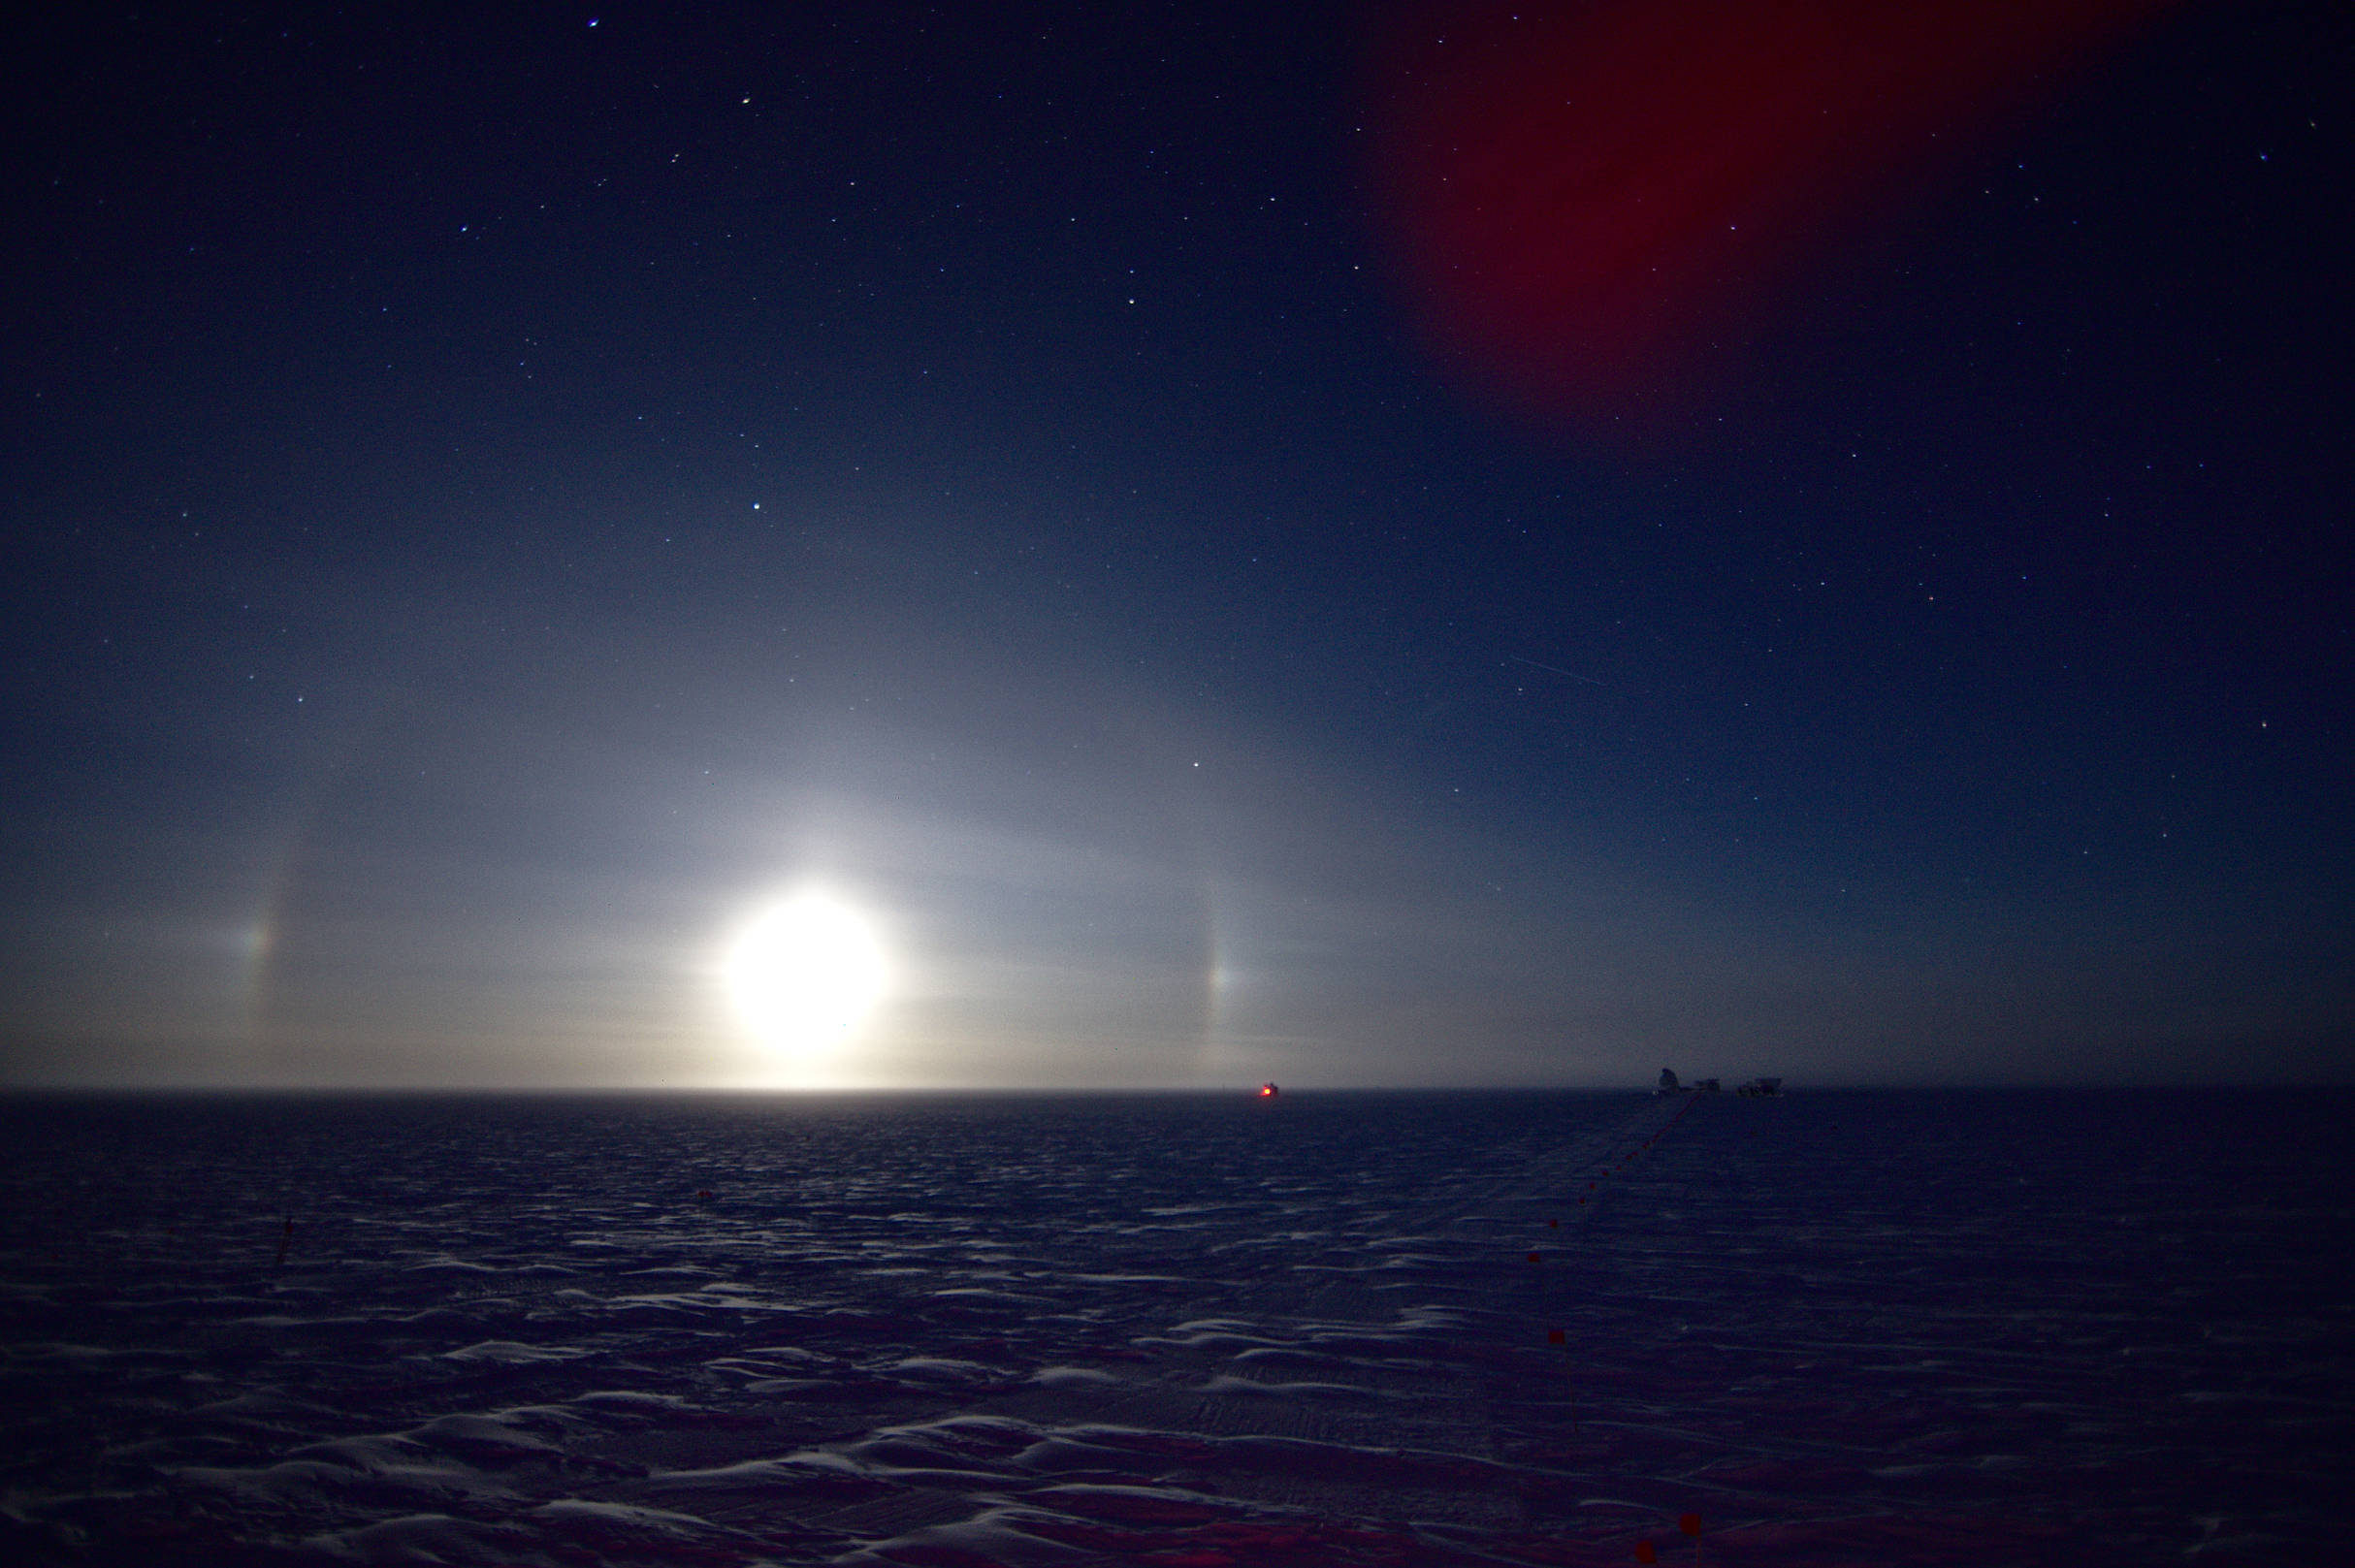 Ice crystals in the atmosphere cause the moonlight to form a partial halo and moon dogs around the full moon.